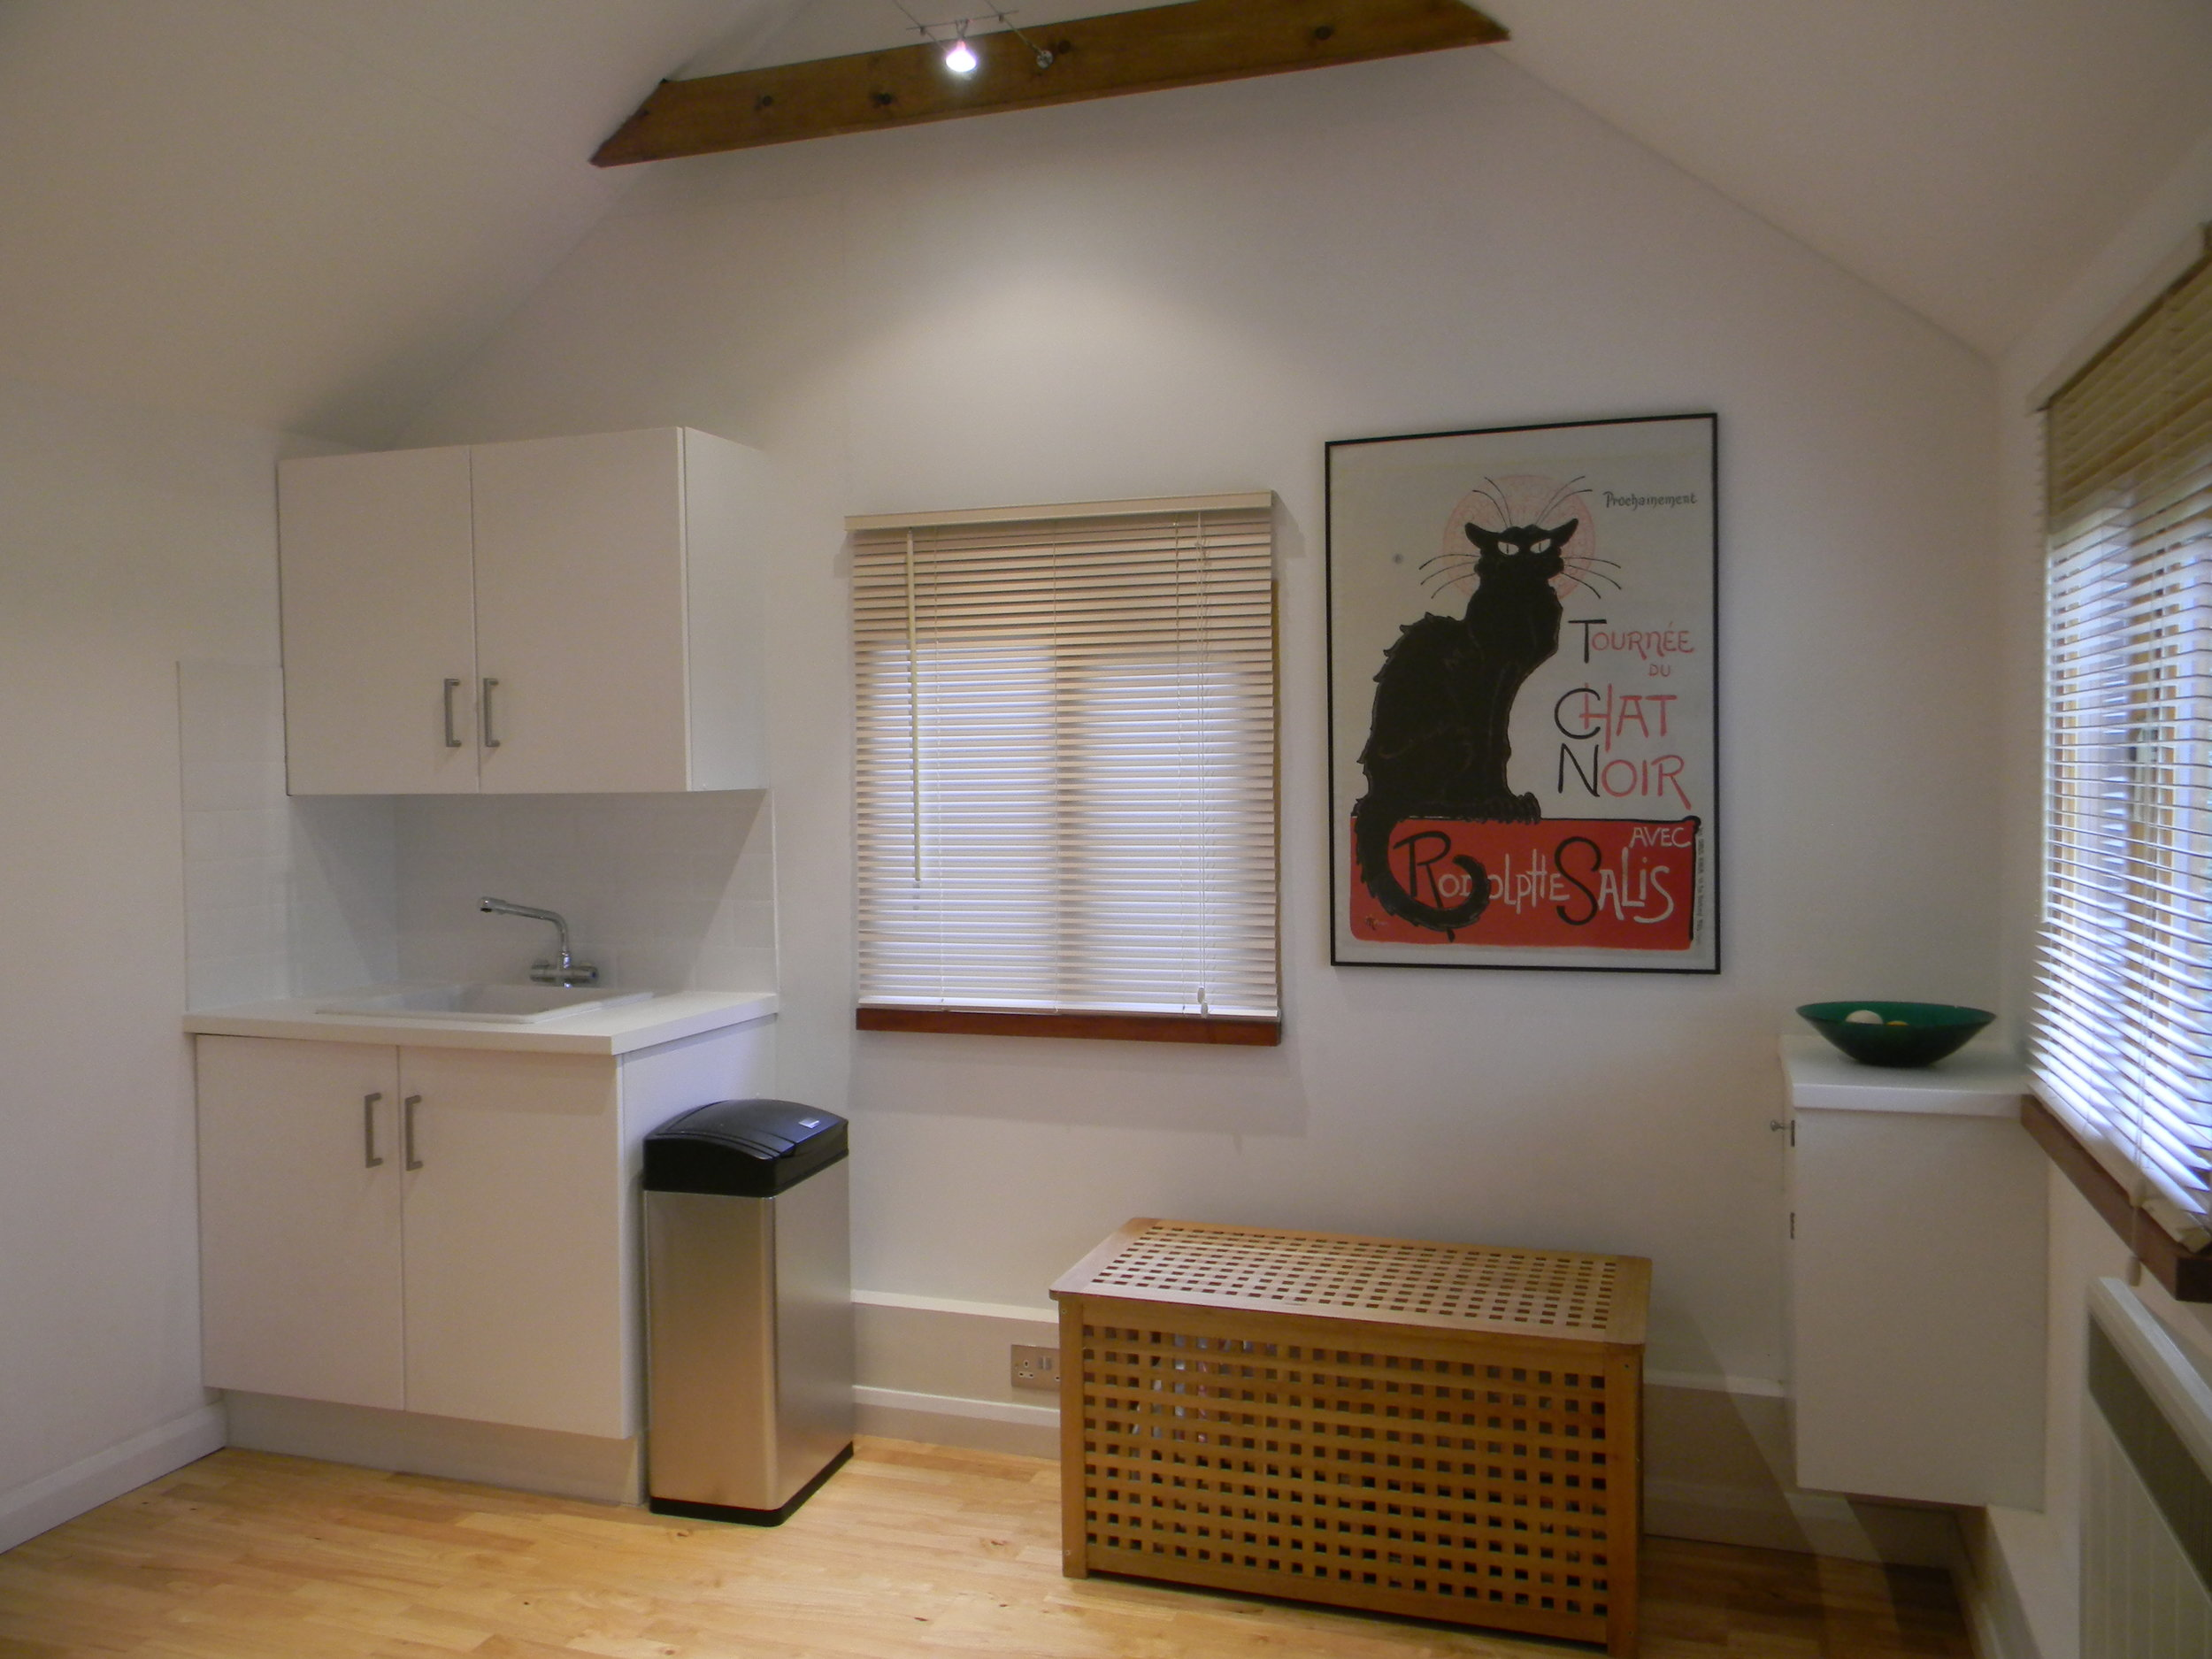 To hire this space - There are opportunities for therapists to rent this delightful space. Please contact Brianan if you want to discuss availability and rates.There is a small waiting room, a large treatment room with an adjustable couch and toilet facilities. The building is only a few years old and is fully insulated, making it a warm and cosy working environment with plenty of natural day light.